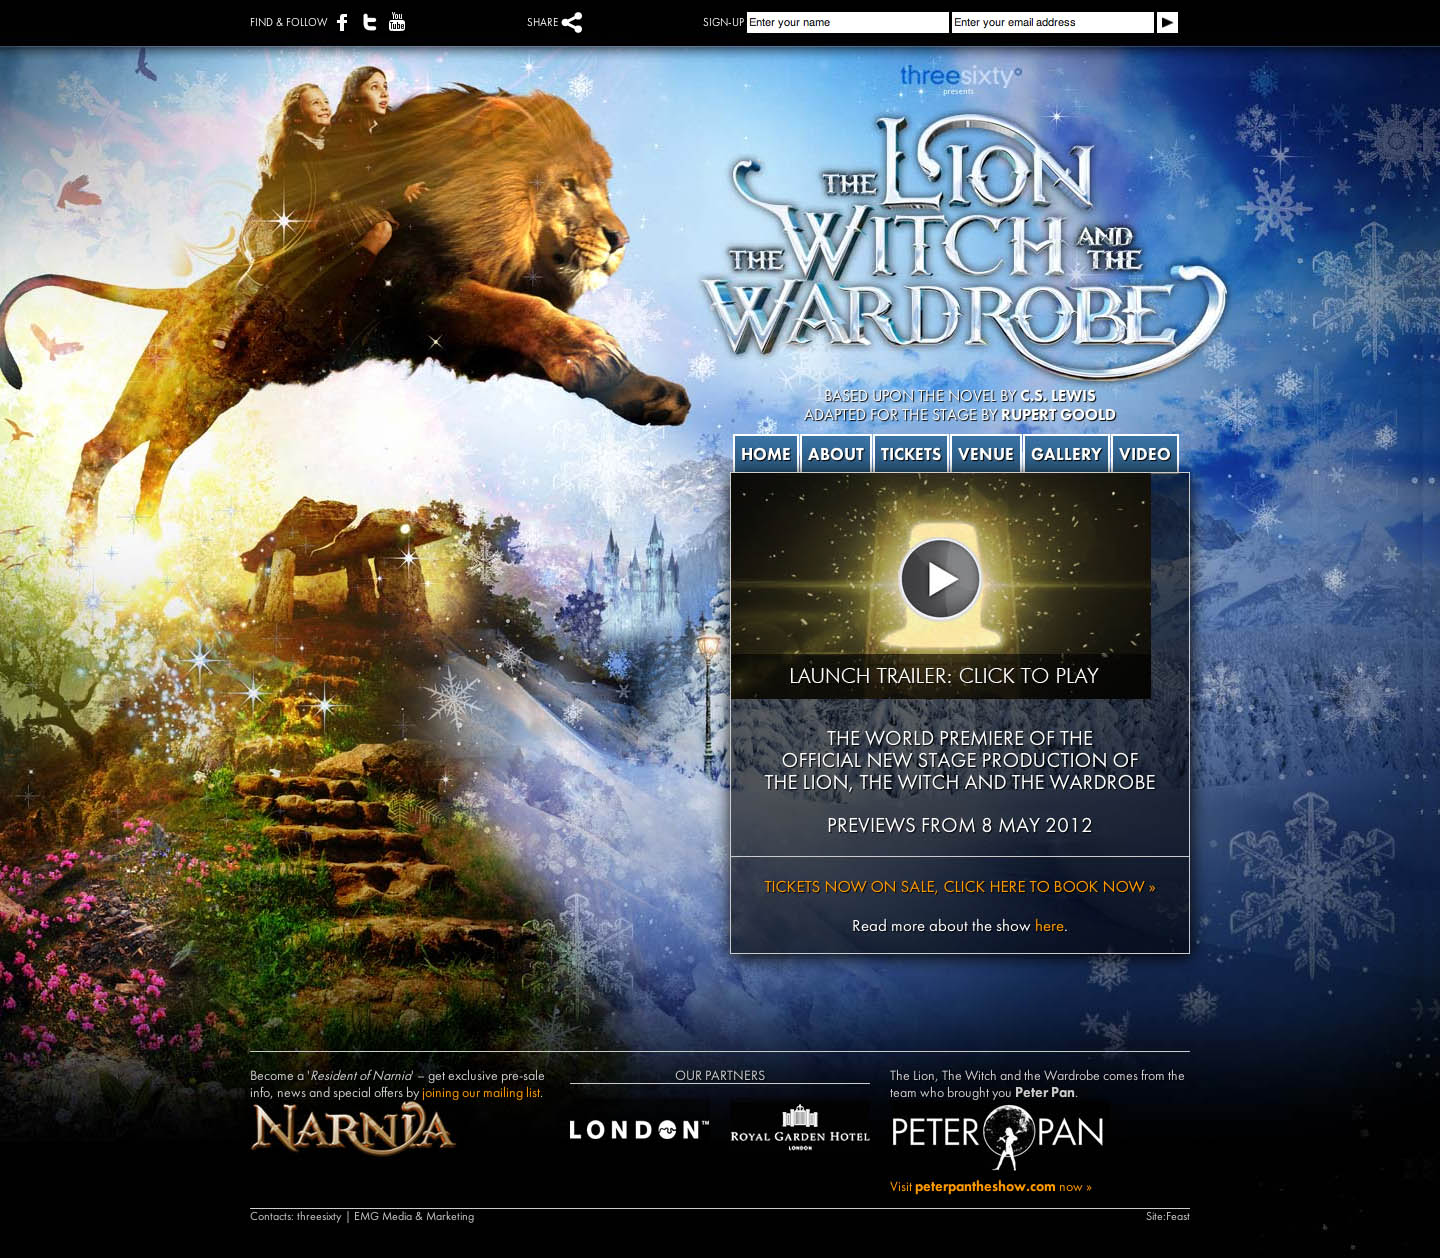 The Lion, the Witch and the Wardrobe Website Screenshot